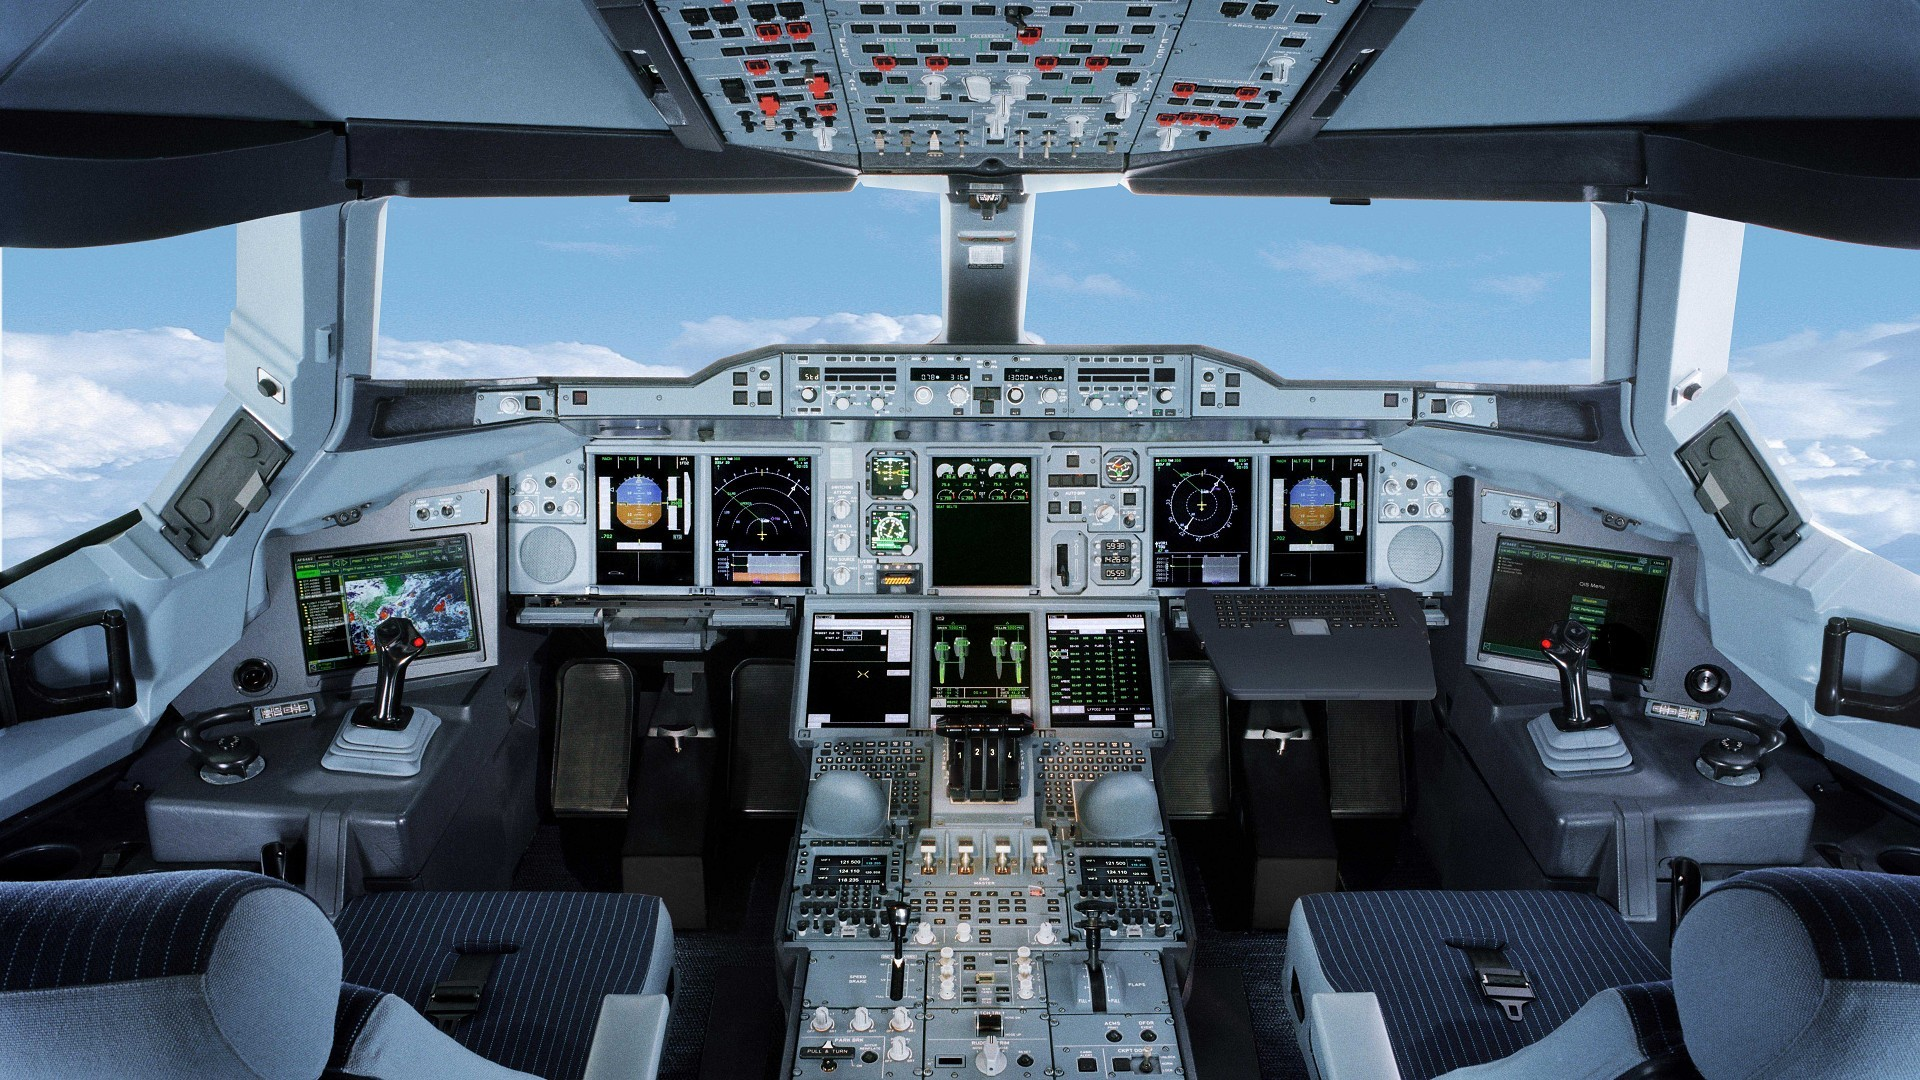 Cockpit Poster – the official AIRBUS merchandise website